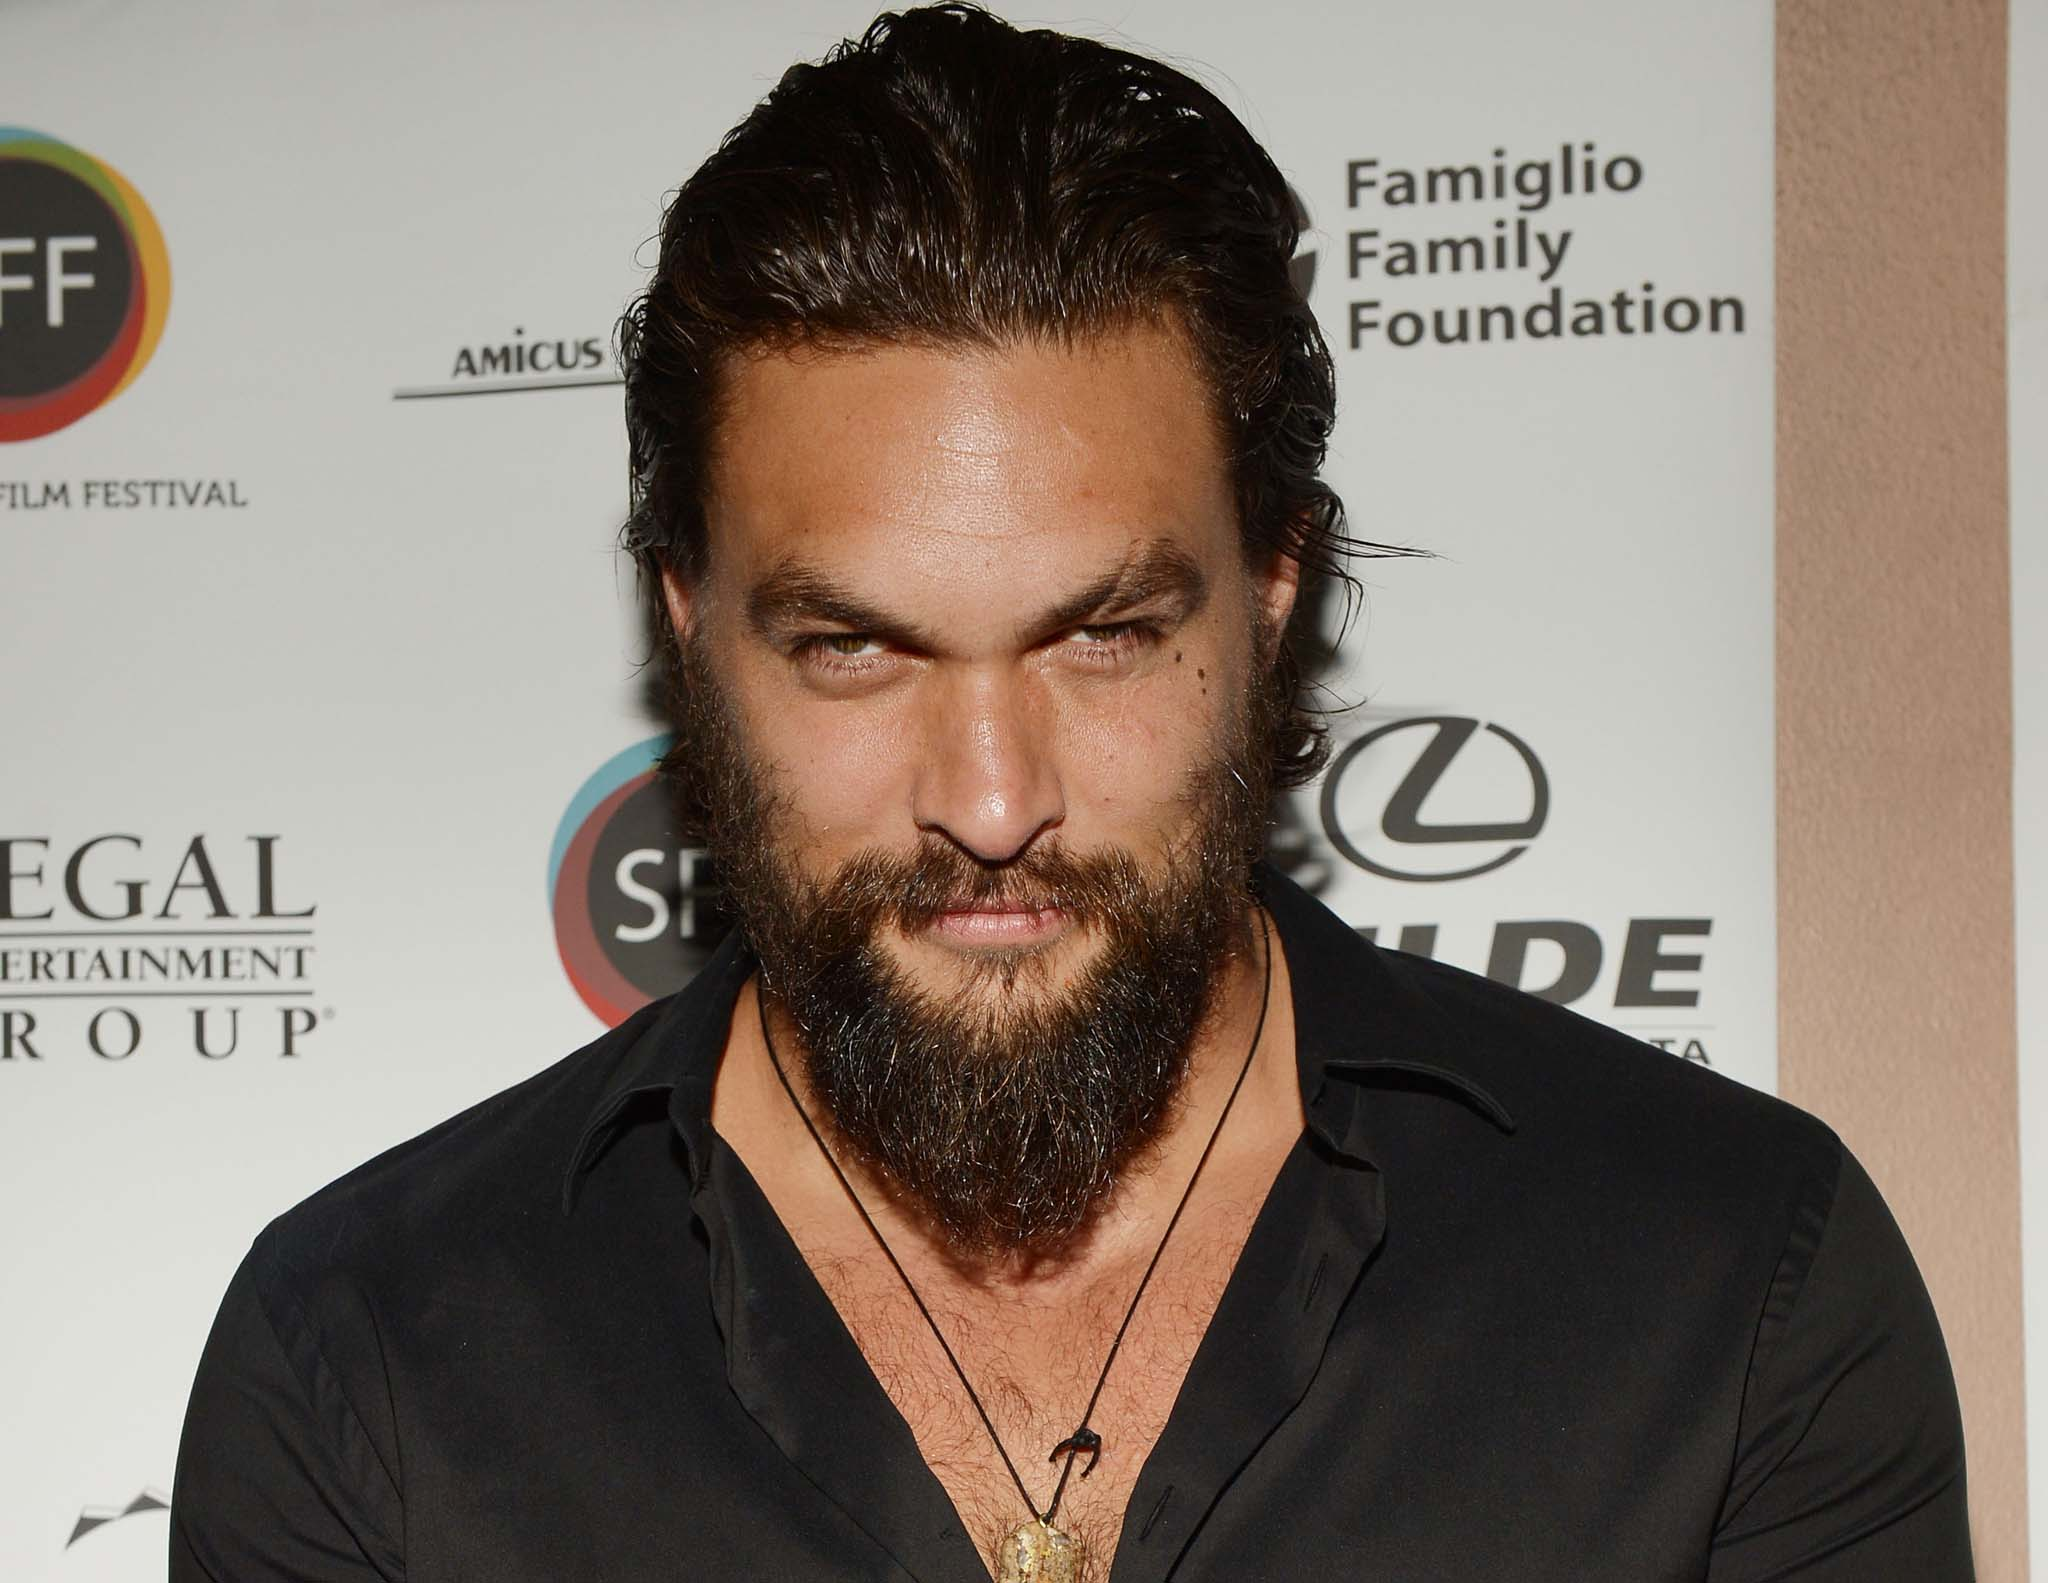 Watch Game Of Thrones Star Jason Momoa Perform A Haka For